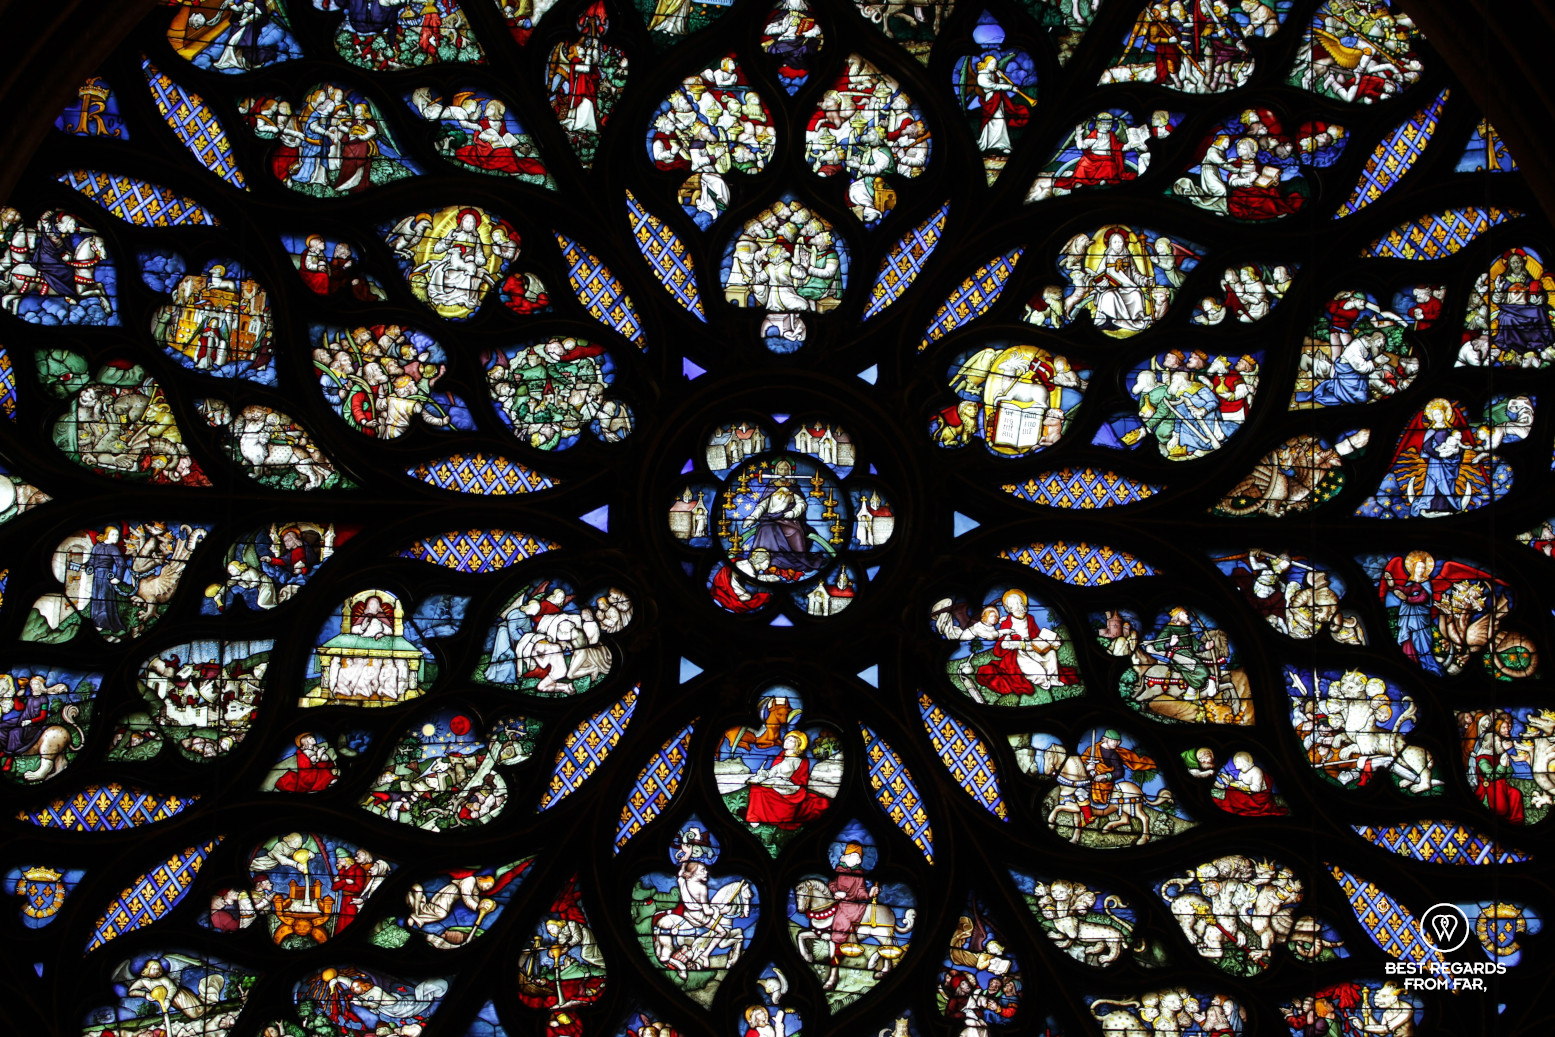 The renovated stained-glass rose window of La Sainte Chapelle in Paris, France